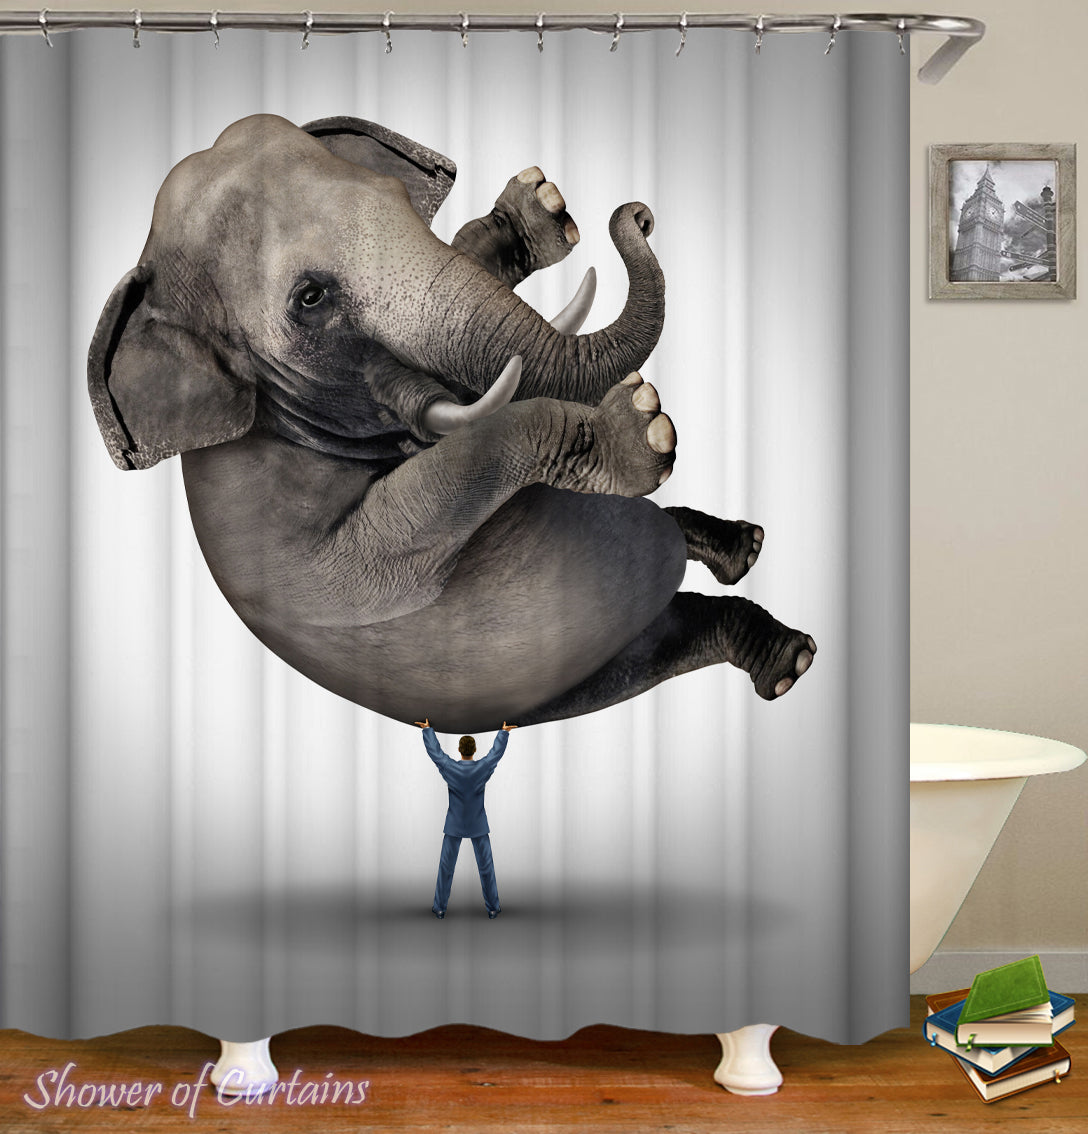 Shower Curtains | Lift An Elephant – Shower of Curtains